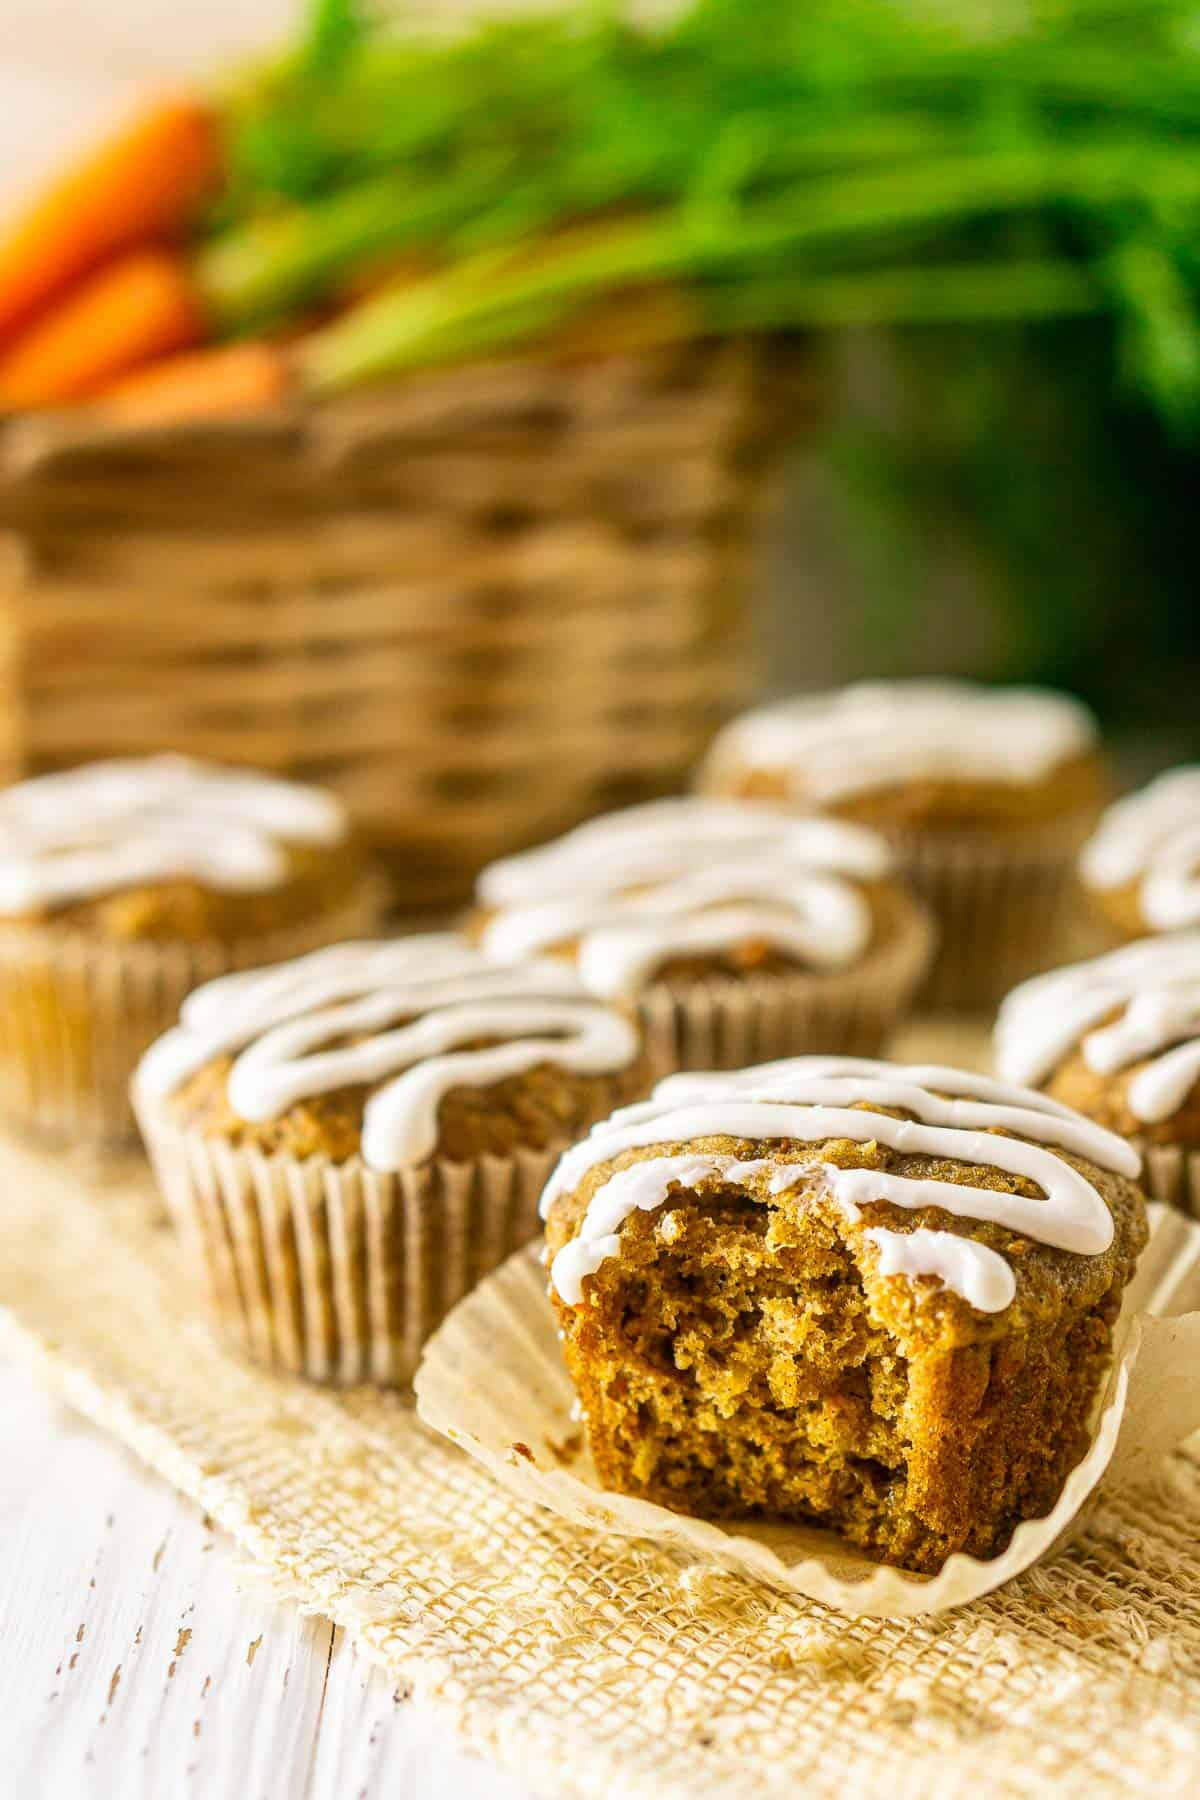 The carrot cake muffin after a bite has been taken out to show the fluffy interior.